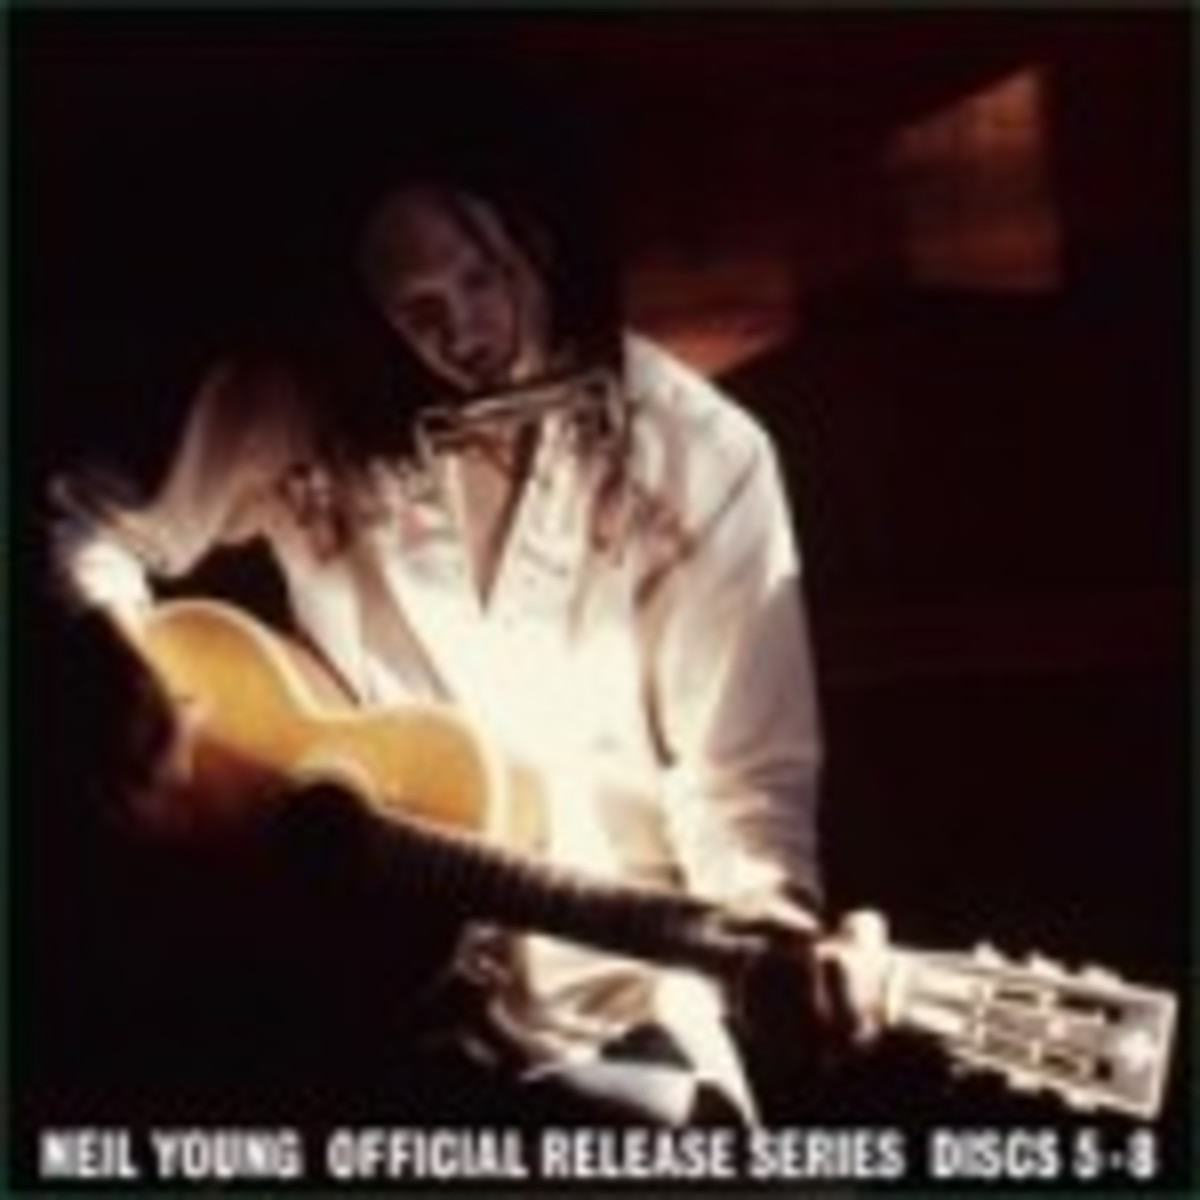 Neil Young official release series discs 5 through 8 on vinyl